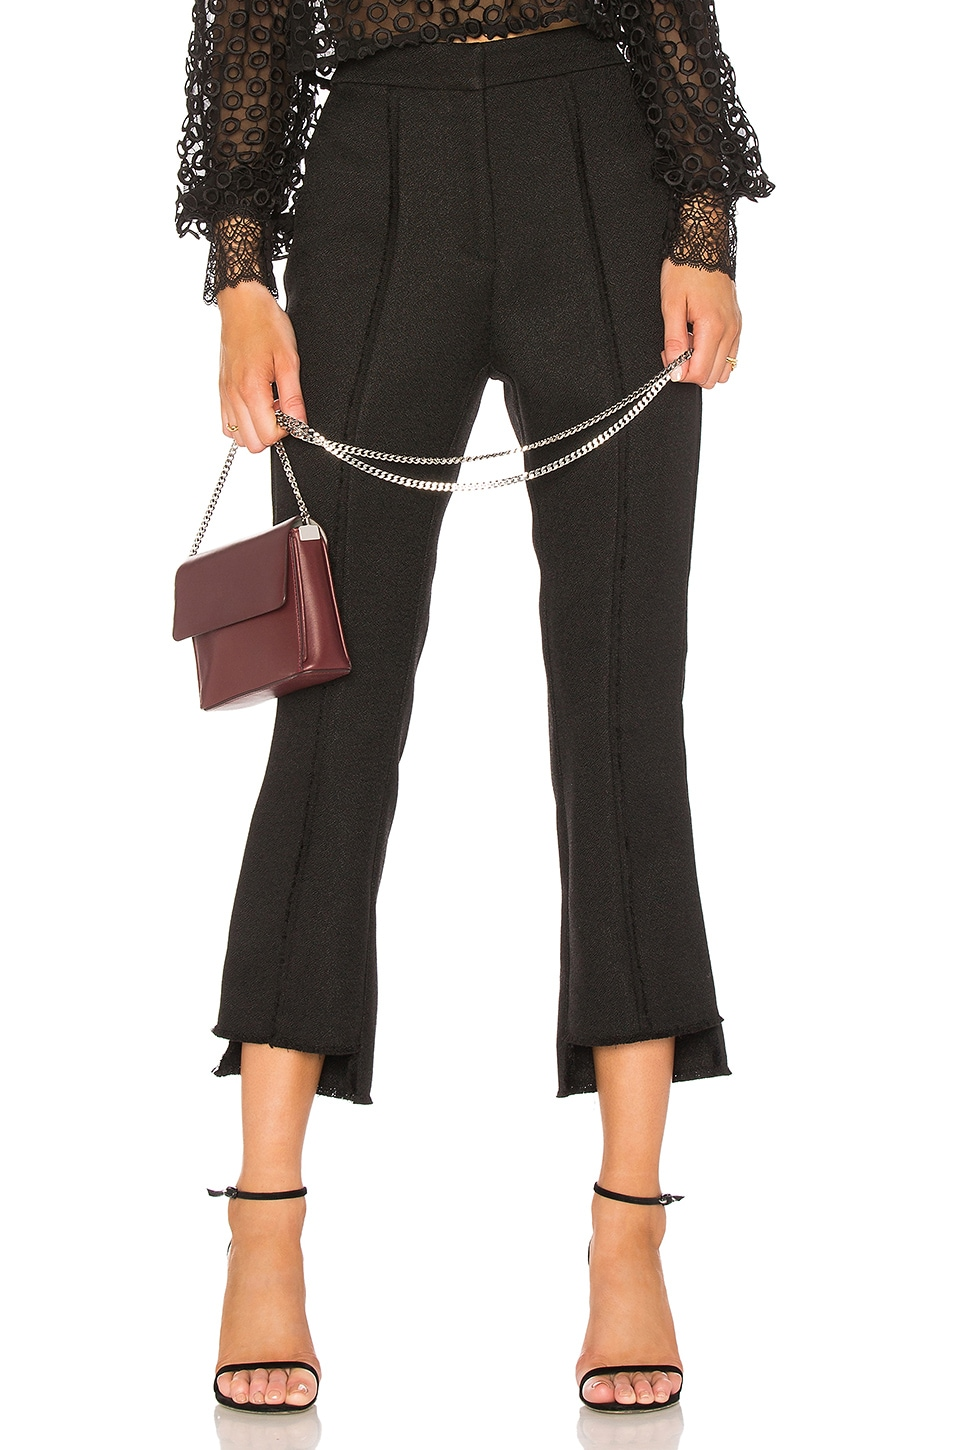 Misha Collection Marissa Pant in Black